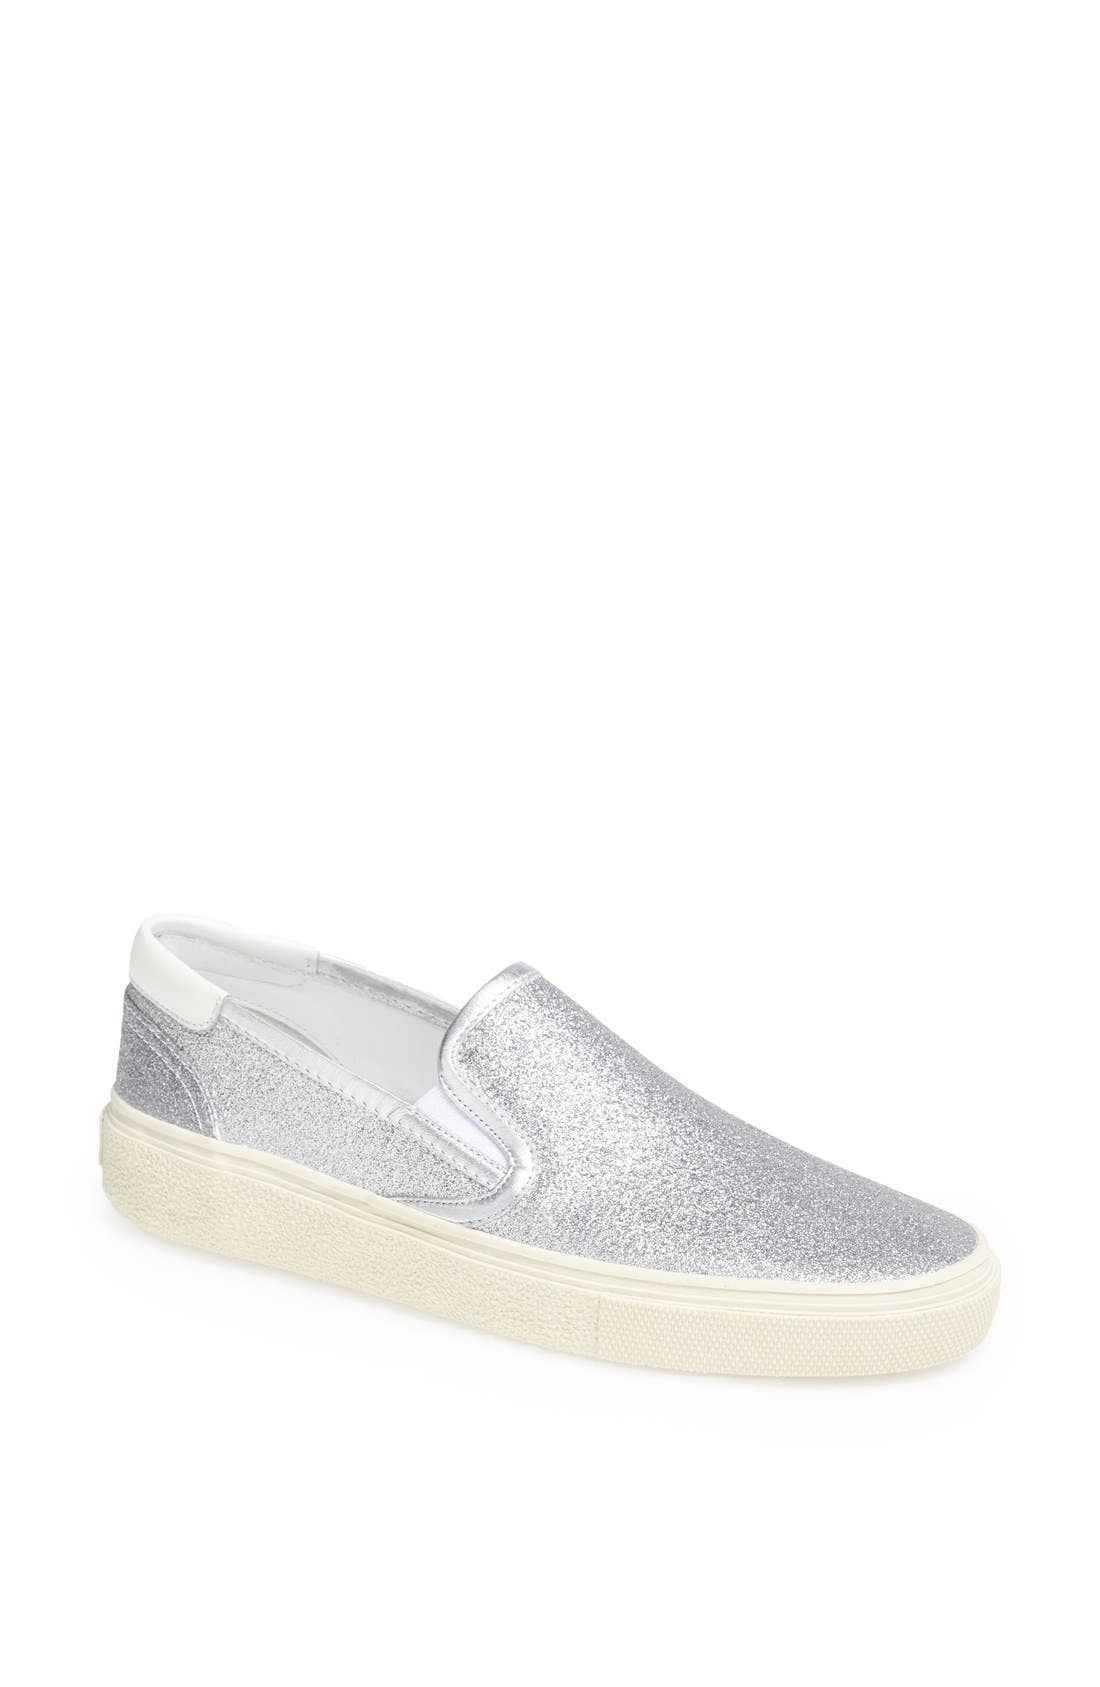 Main Image - Saint Laurent 'Skate 20' Glitter Slip-On Sneaker (Women)